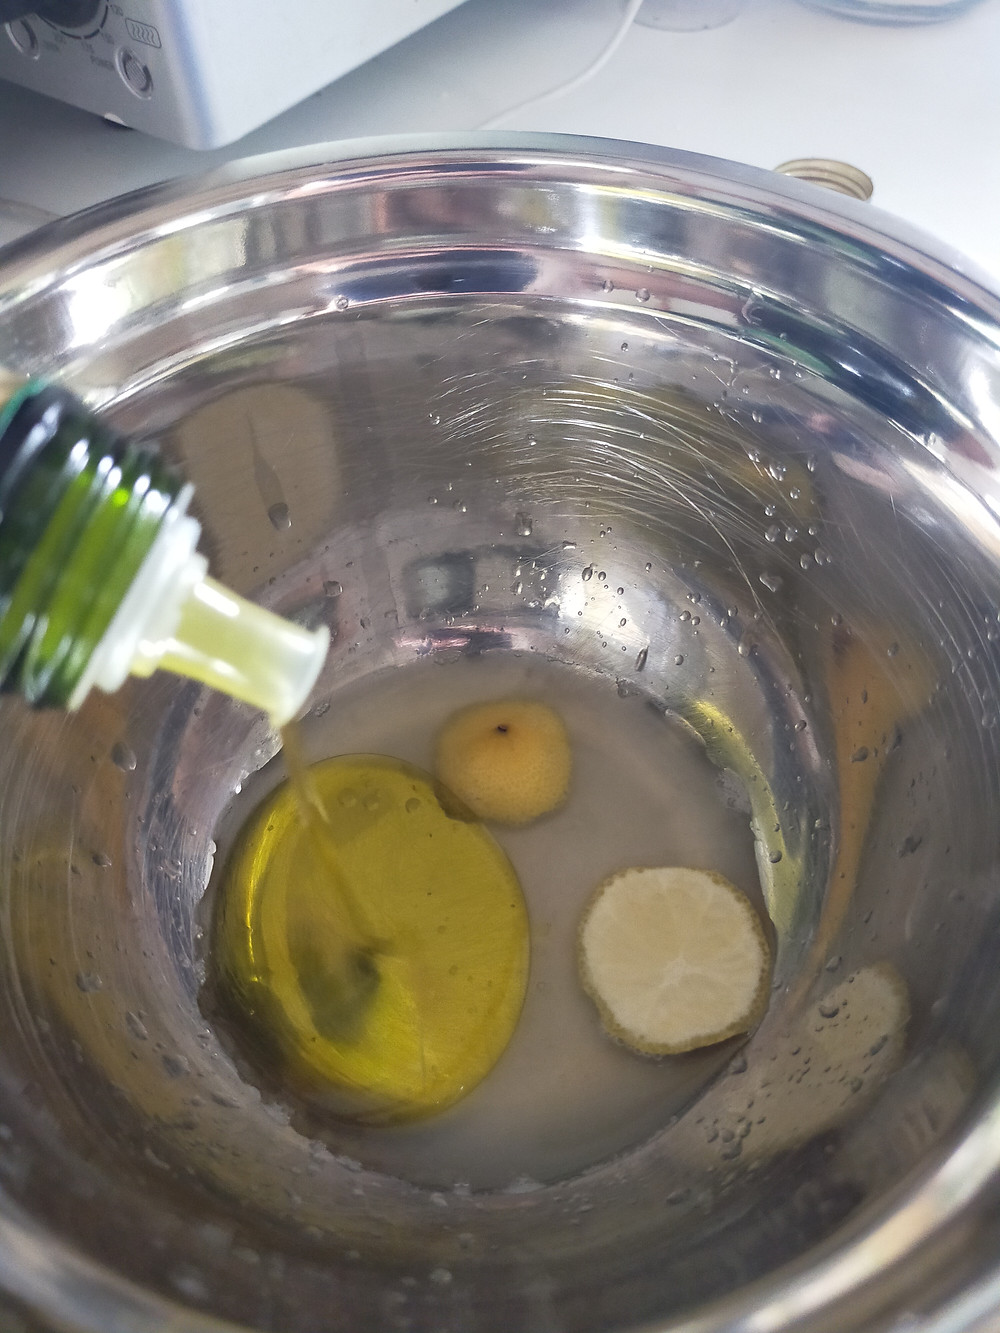 Olive oil is being added to a metal bowl which has the ends of a lemon and lemon juice inside.